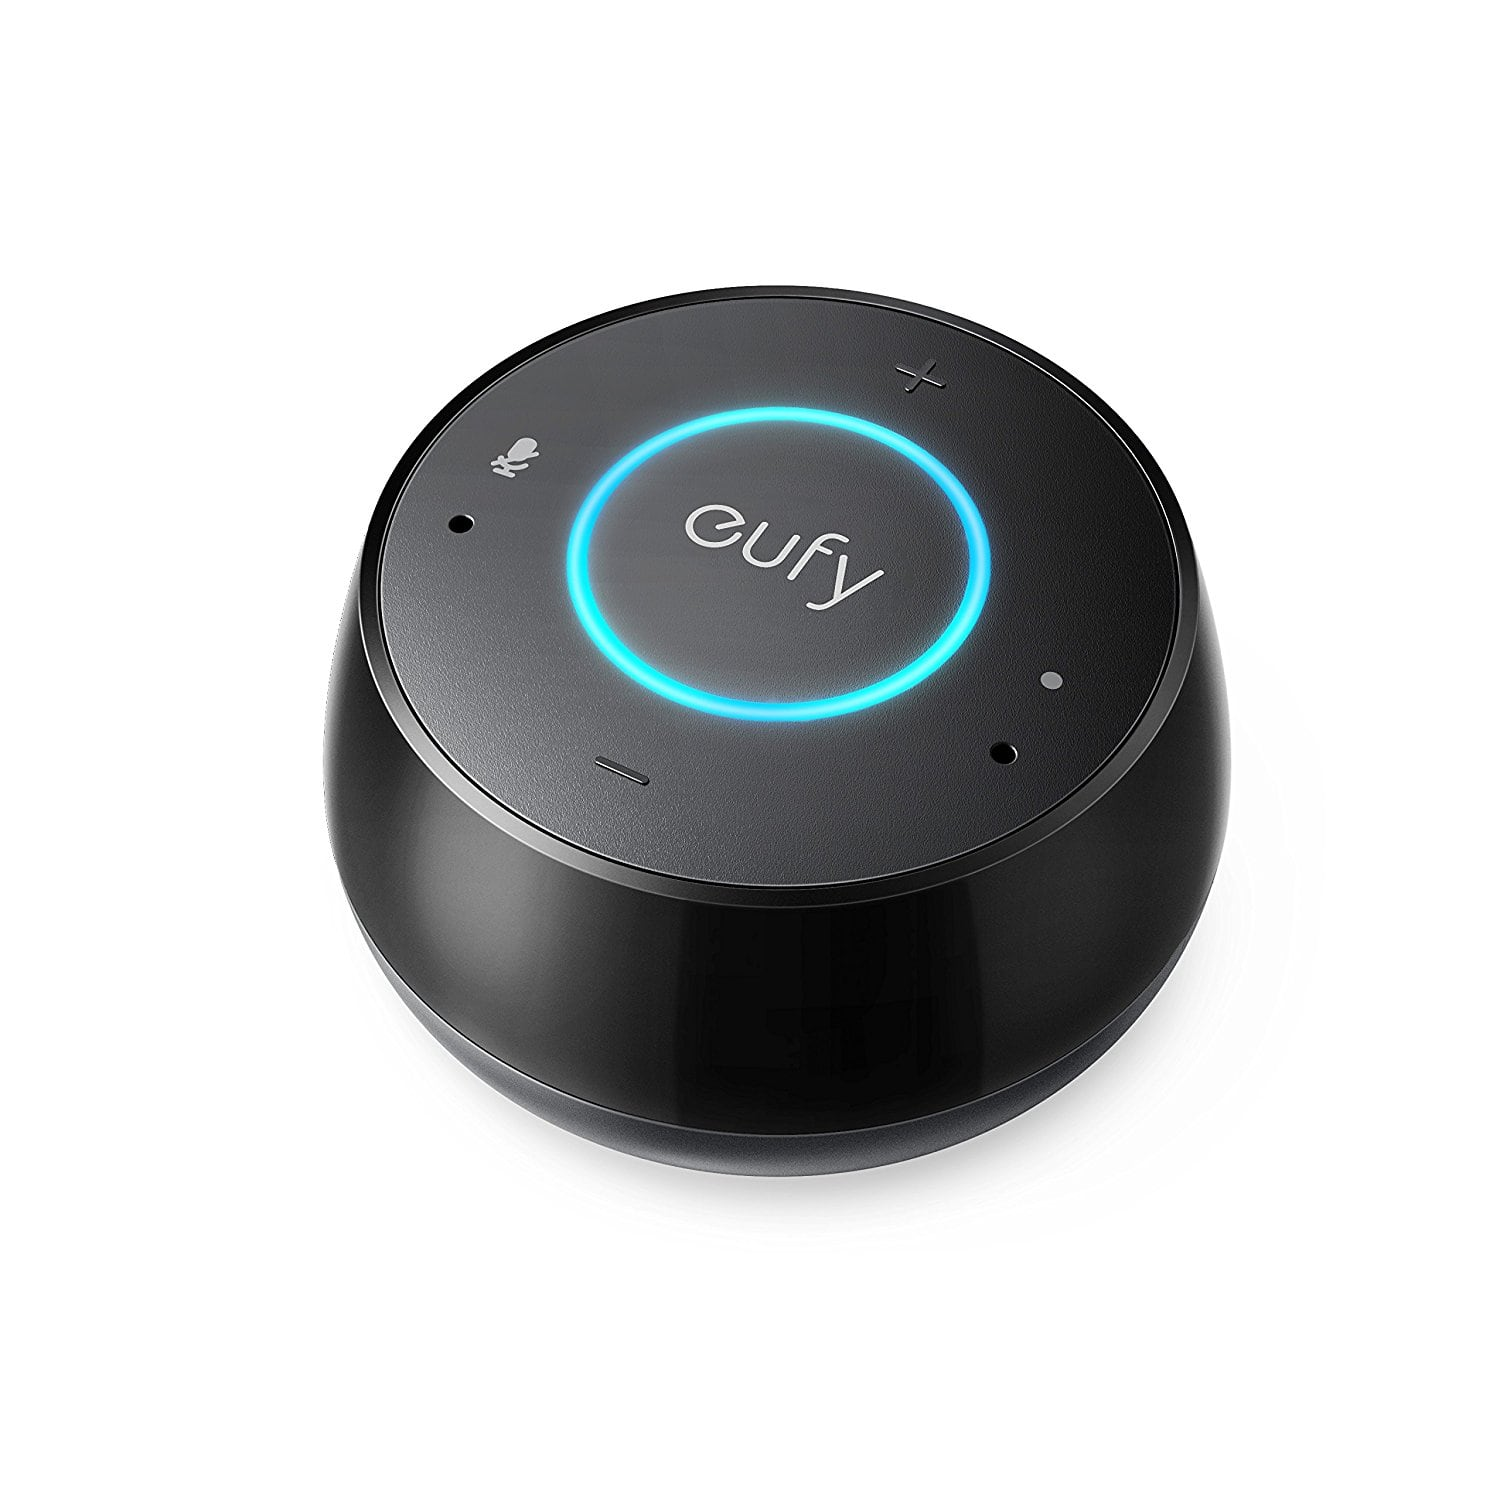 Eufy Genie Smart Speaker With Amazon Alexa, ONLY $19.99 ($15 OFF), ONLY 24 hours